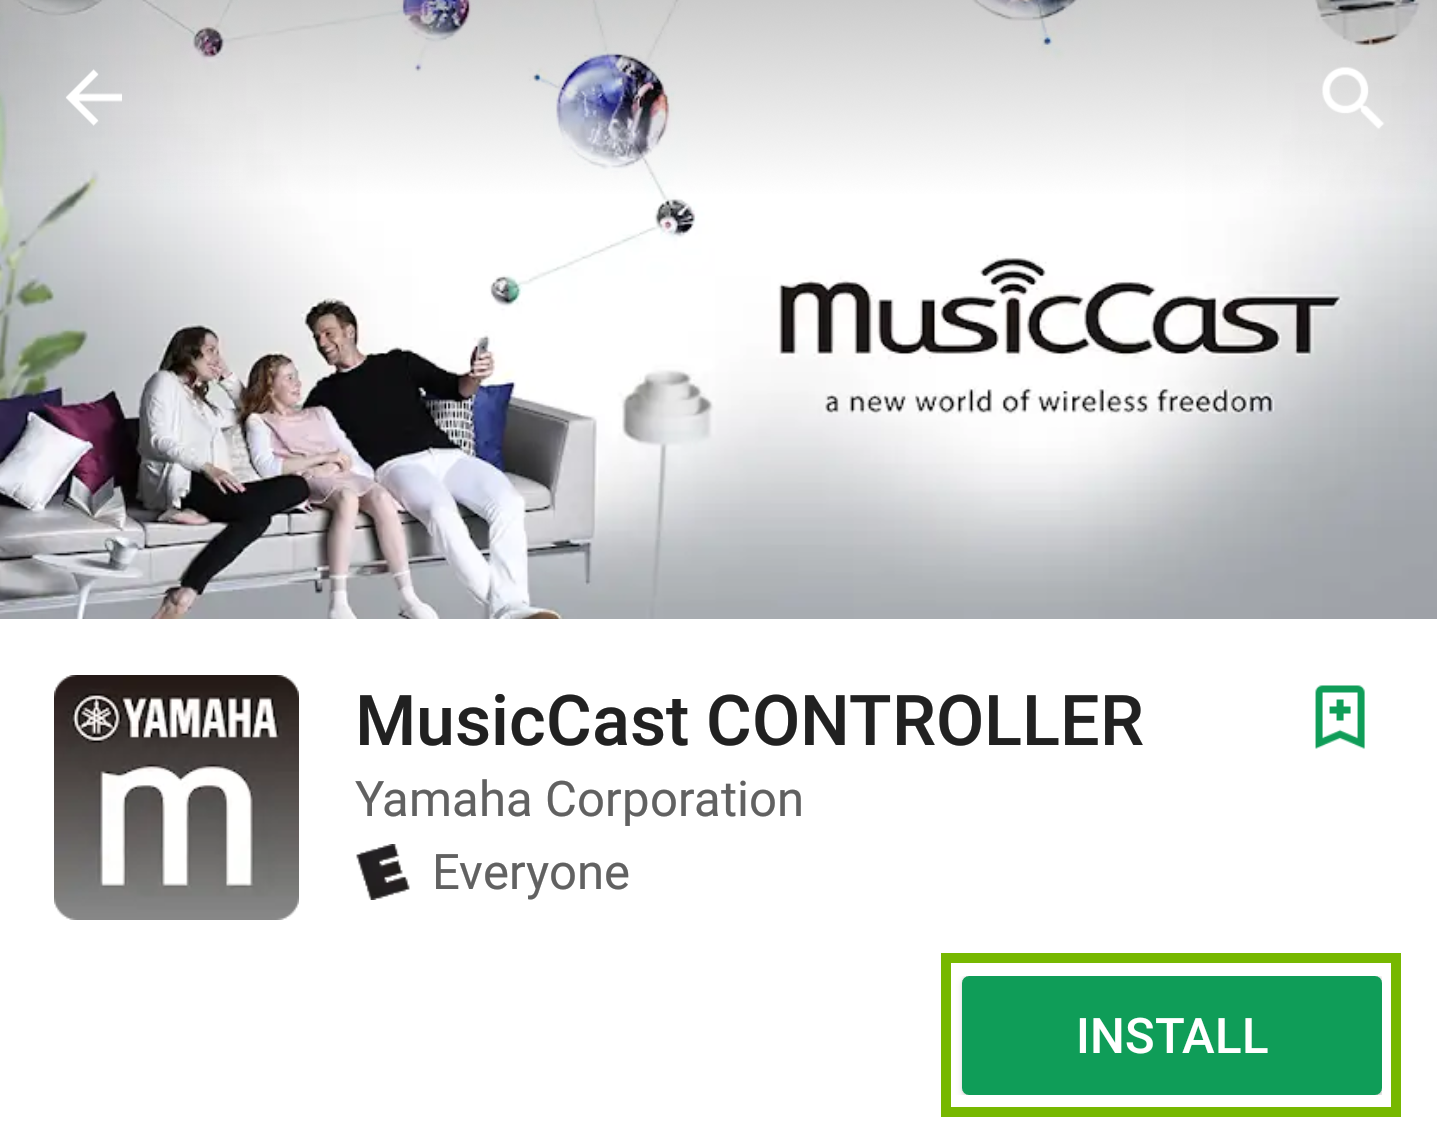 MusicCast App Page with install button highlighted.